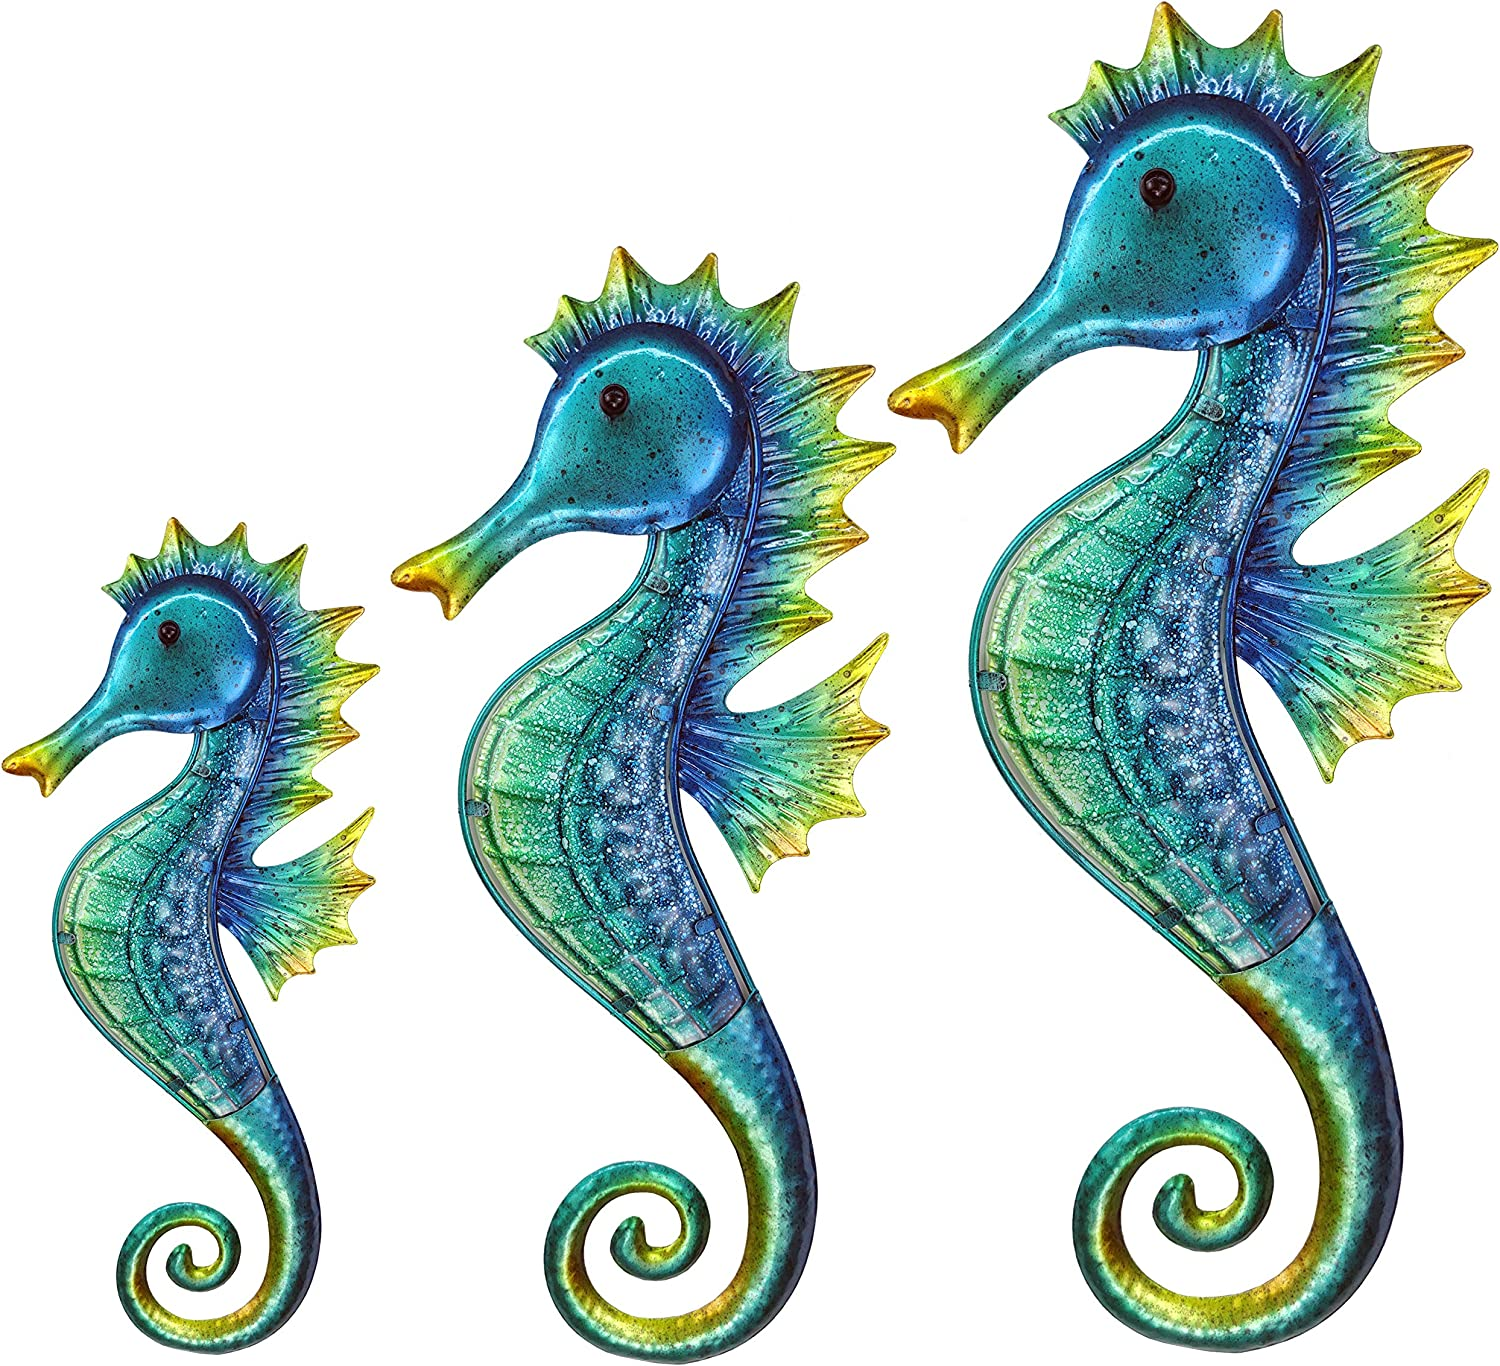 JOYBee 3Pcs 18inch 14inch 11.5inch Coastal Ocean Metal Large Seahorse Wall Art Decor Family Set,Decorations for Outdoor Indoor Bathroom Kitchen Garden Bedroom Patio,Porch or Fence